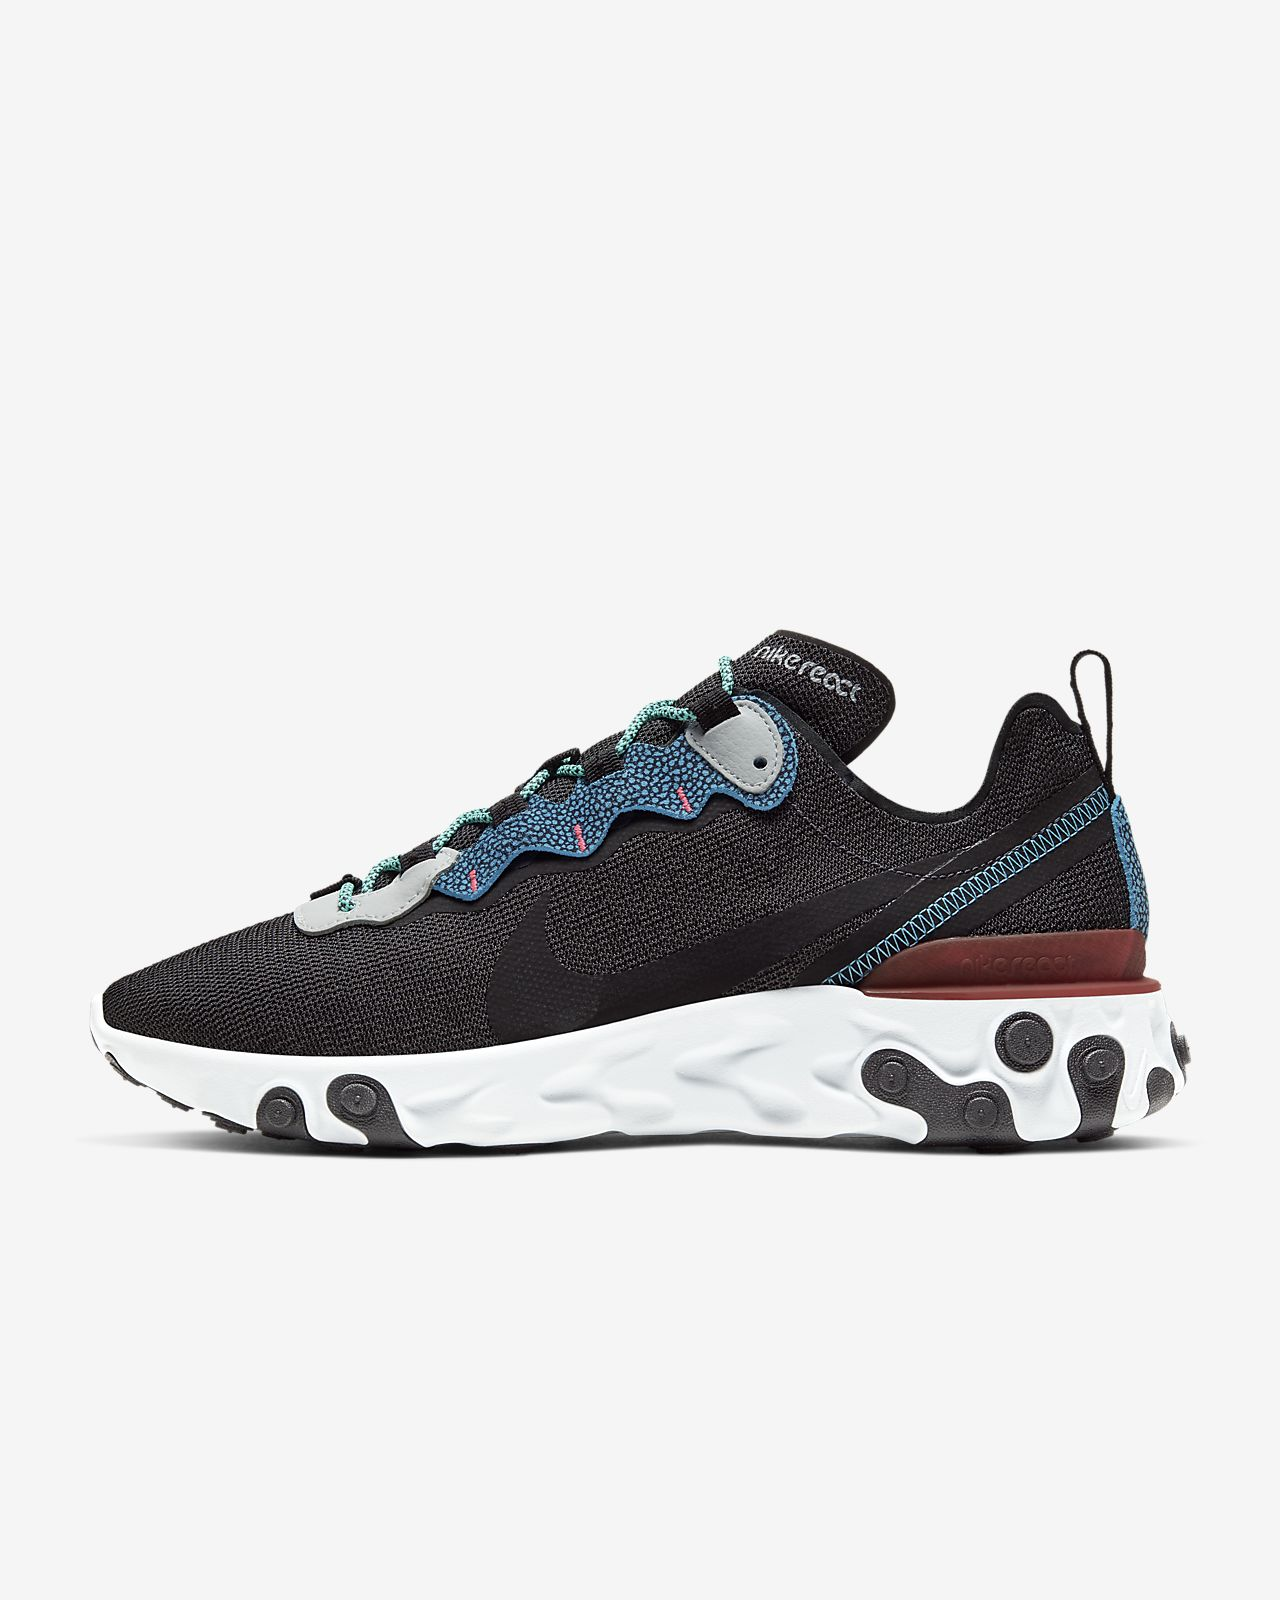 Images Of A High Top Nike React Element Surface Online